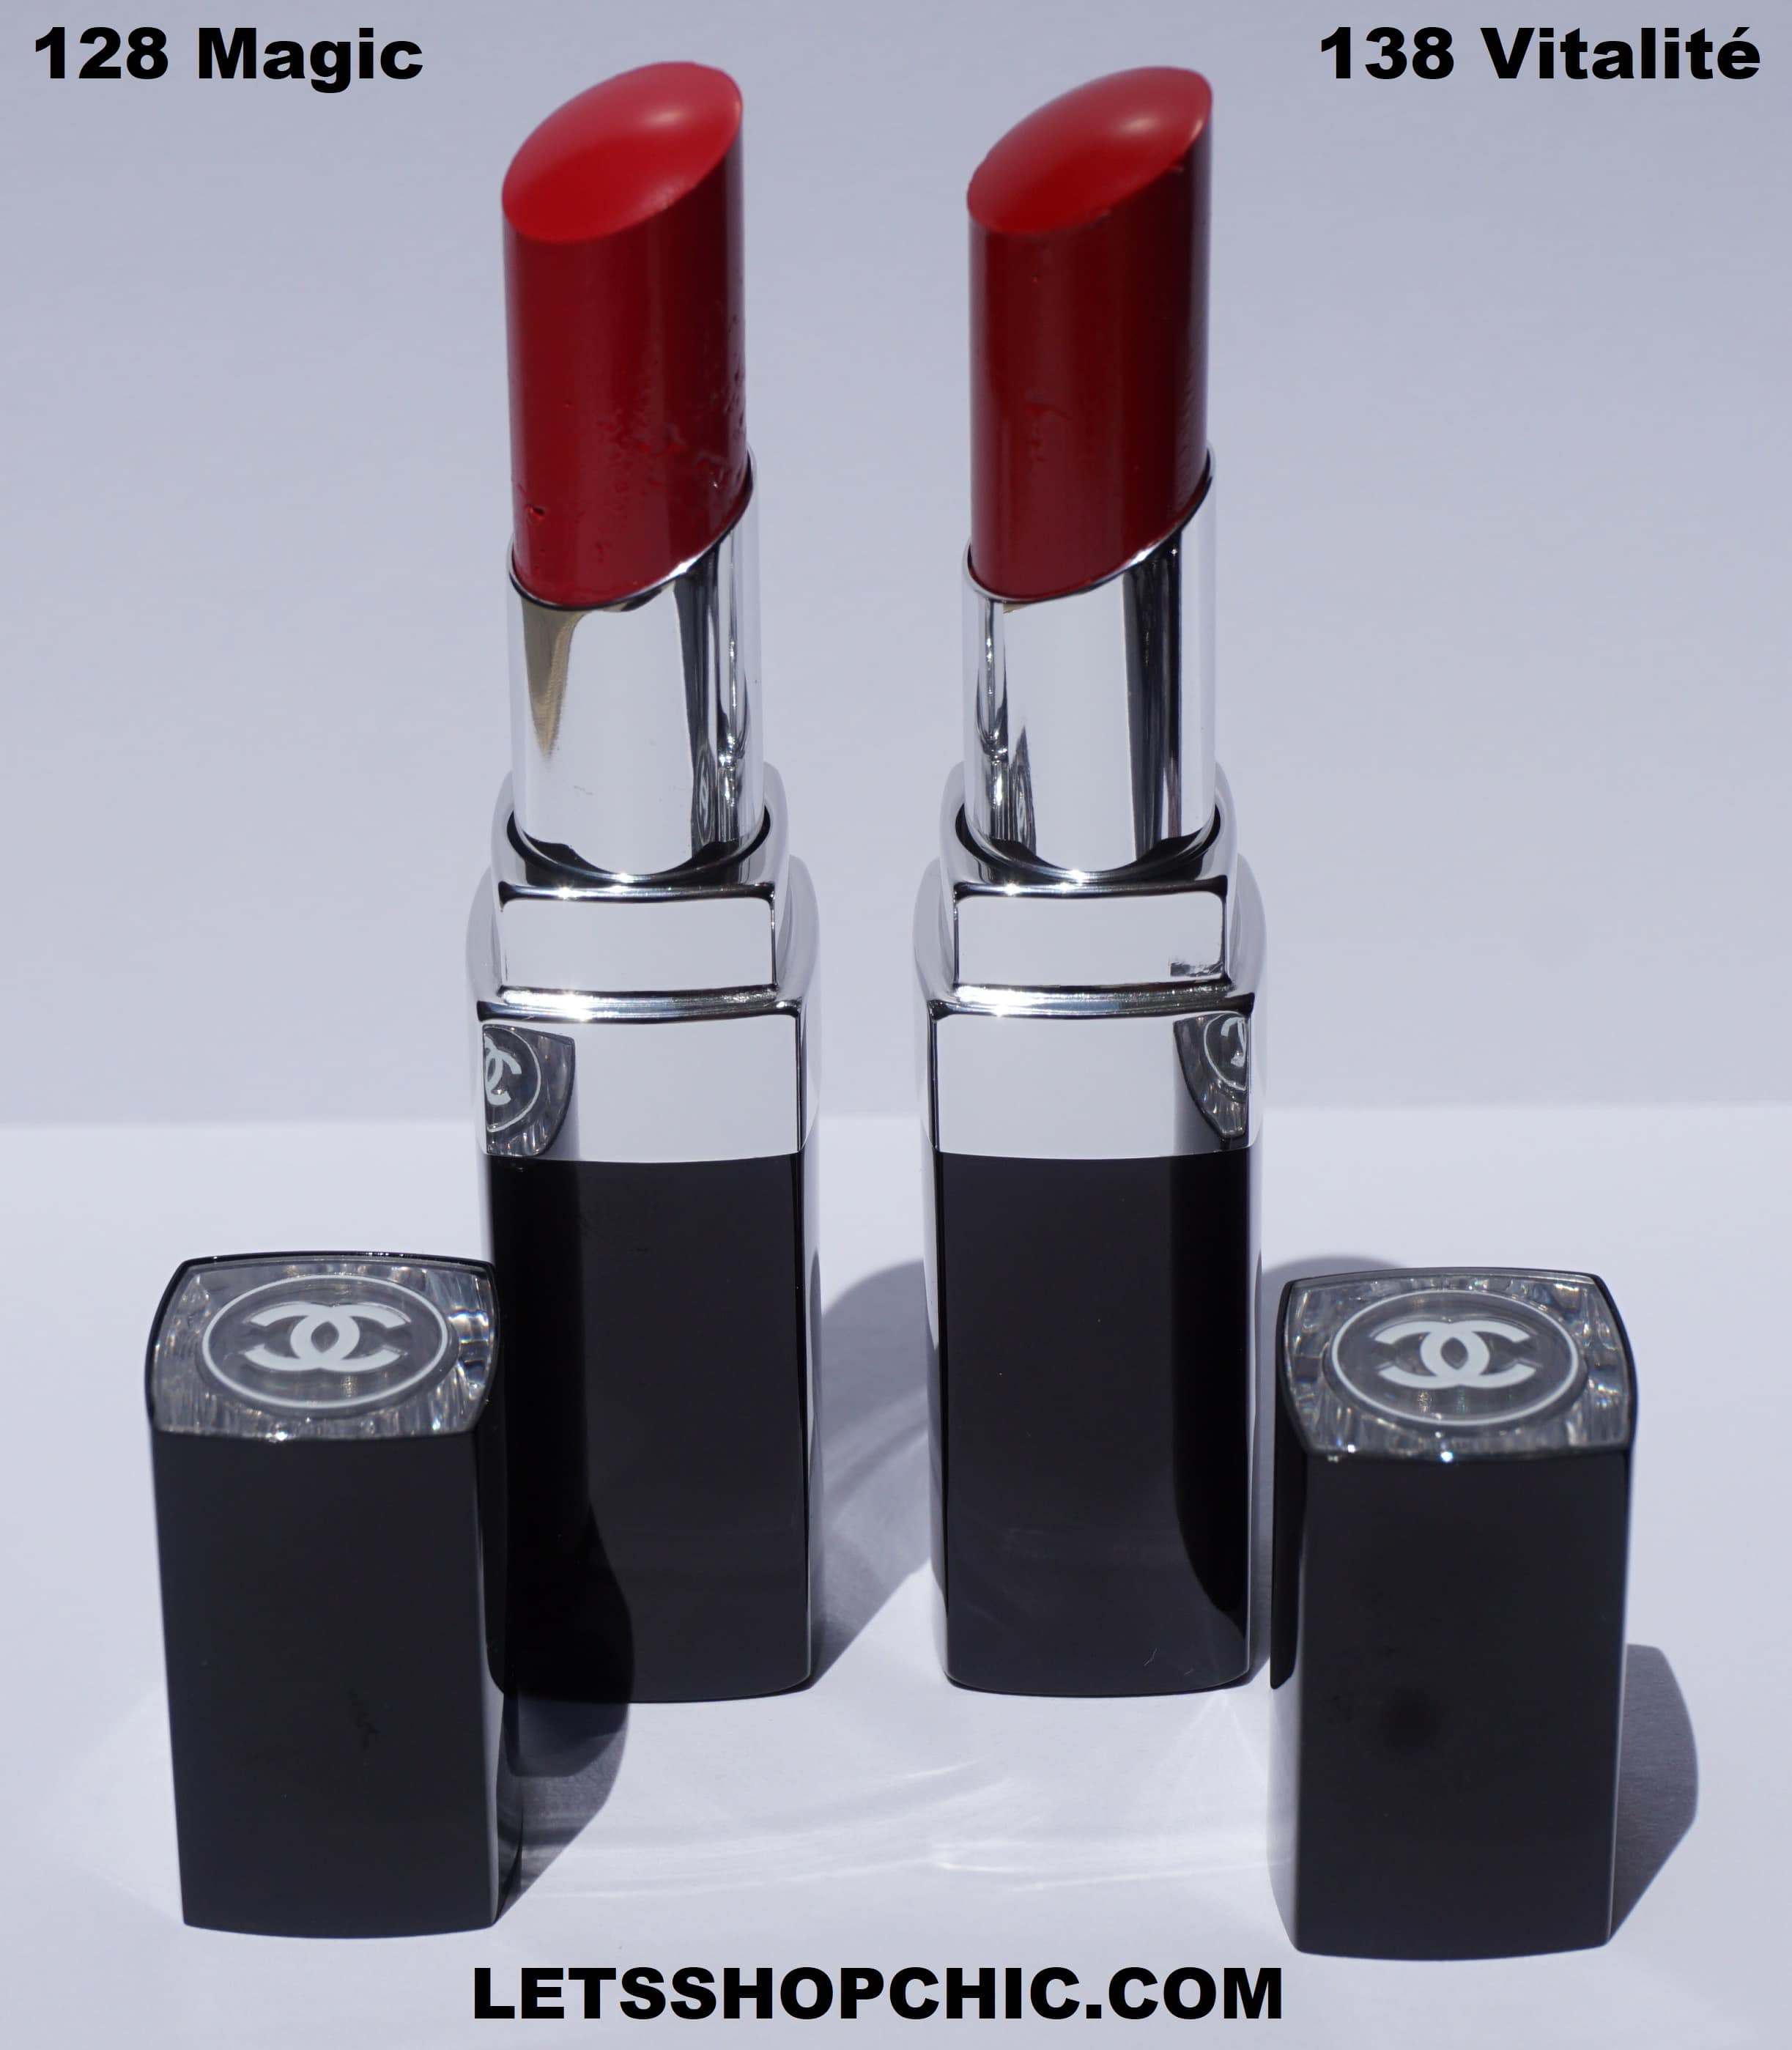 Chanel Rouge Coco Bloom lipstick 128 Magic and Chanel Rouge Coco Bloom lipstick 138 Vitalité